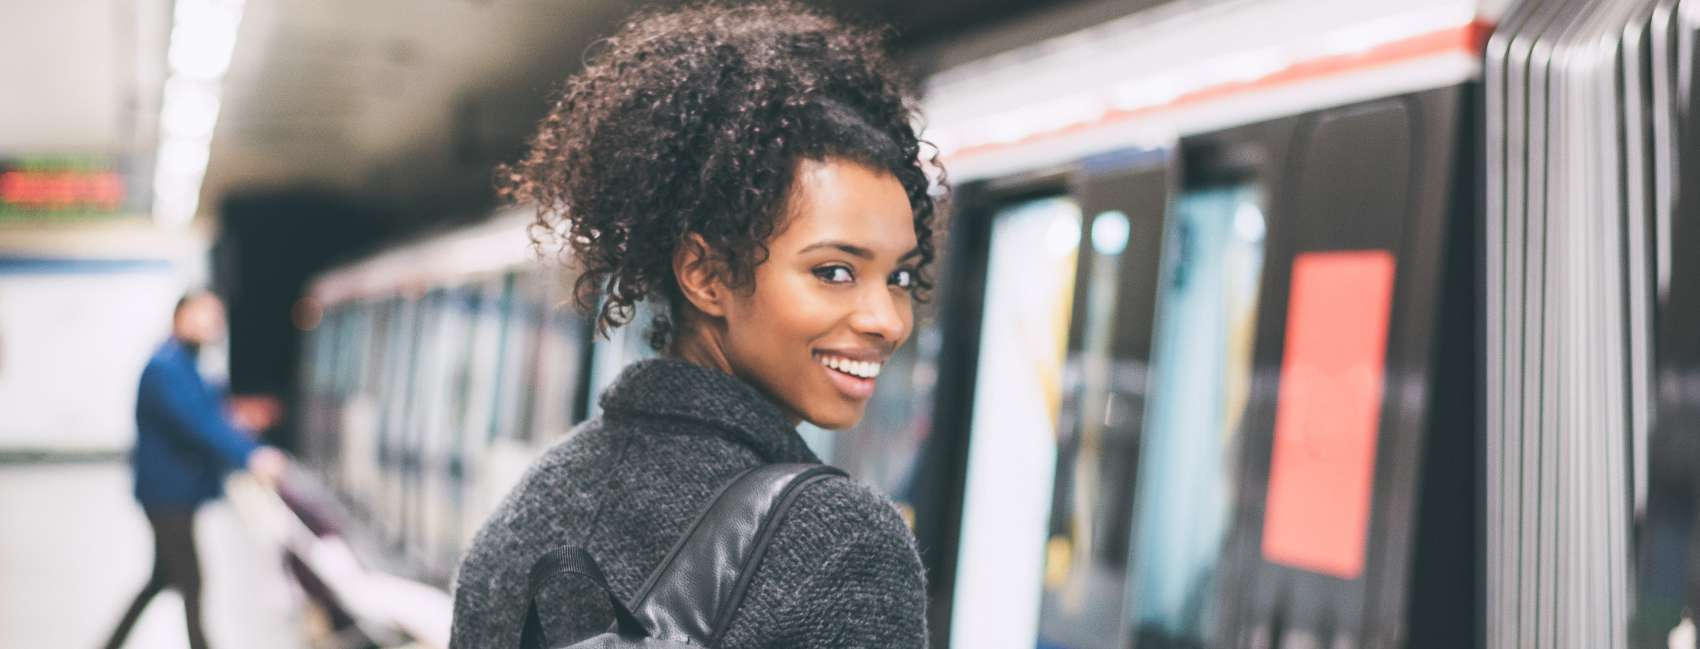 Woman with curly hair looking over her shoulder wearing a backpack on a train platform